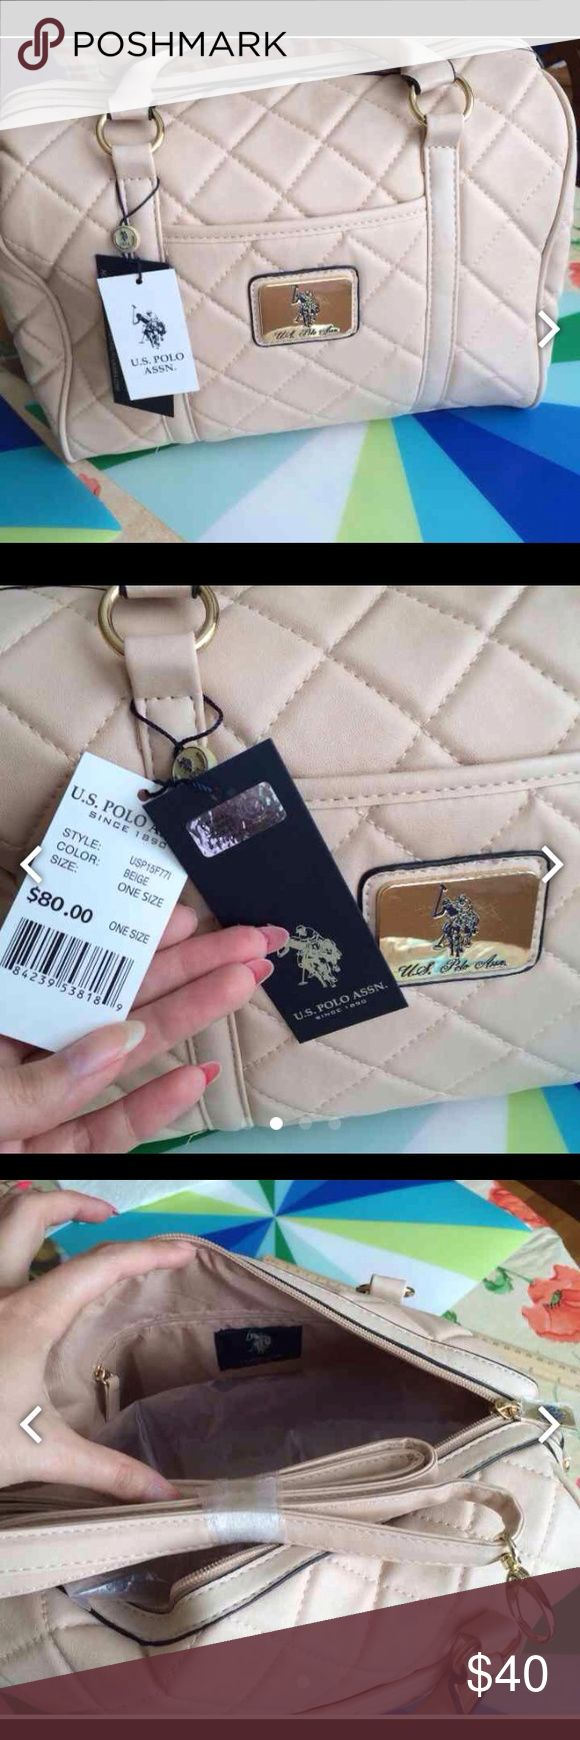 U.S.Polo assn handbag Beige to creamy color, has 3 pockets , a strap, new with tags, has a small stain which can be removed near the tag u.s.polo.assn Bags Shoulder Bags